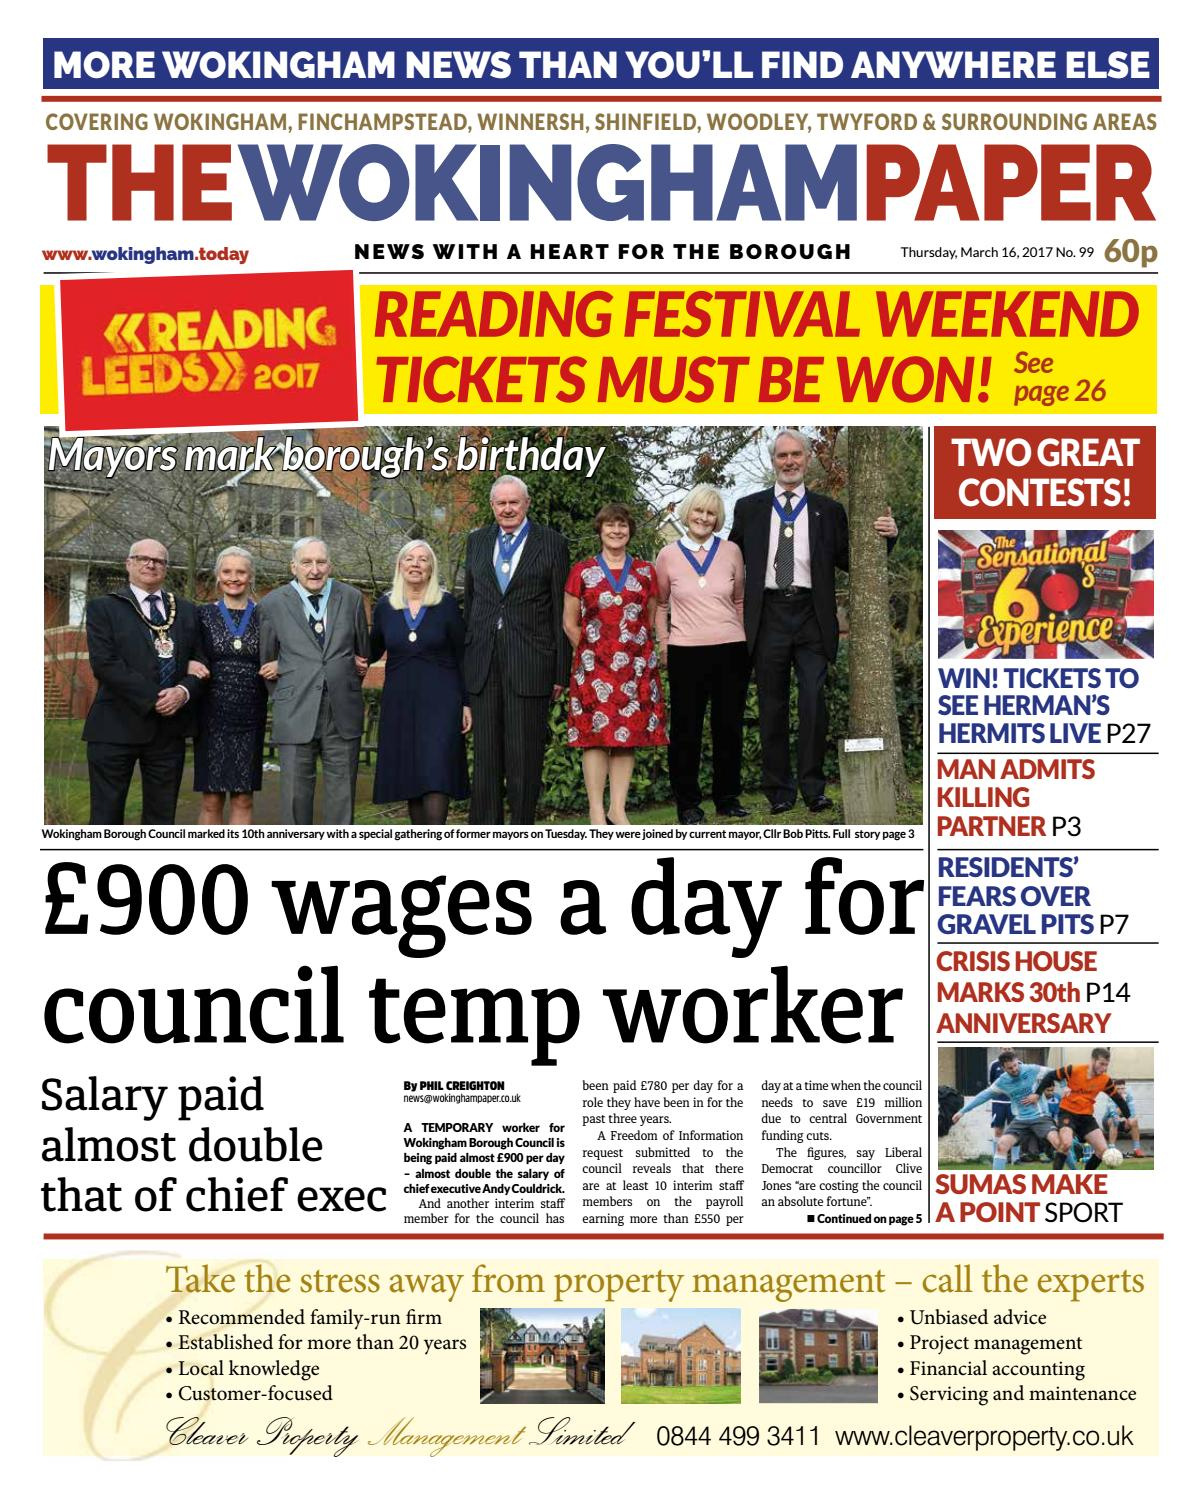 The Wokingham Paper March 16, 2017 by The Wokingham Paper